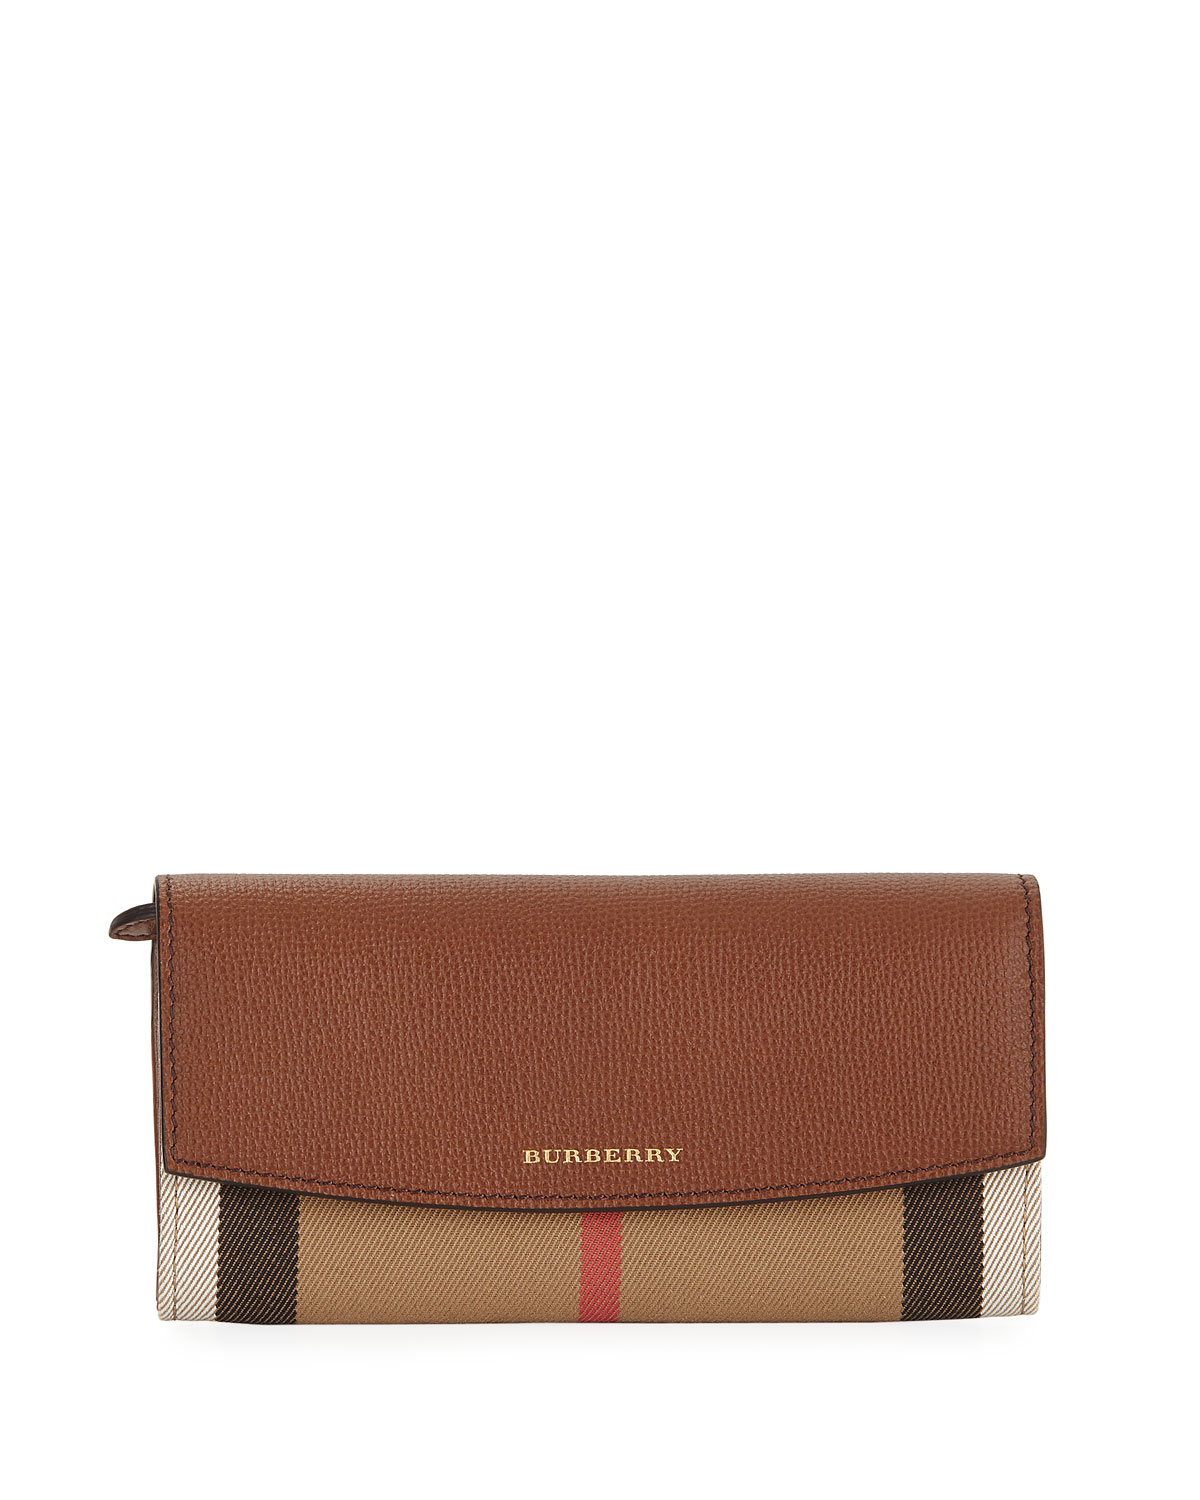 Burberry Porter House Check   Leather Continental Wallet, Cocoa ... 08e6ce1564